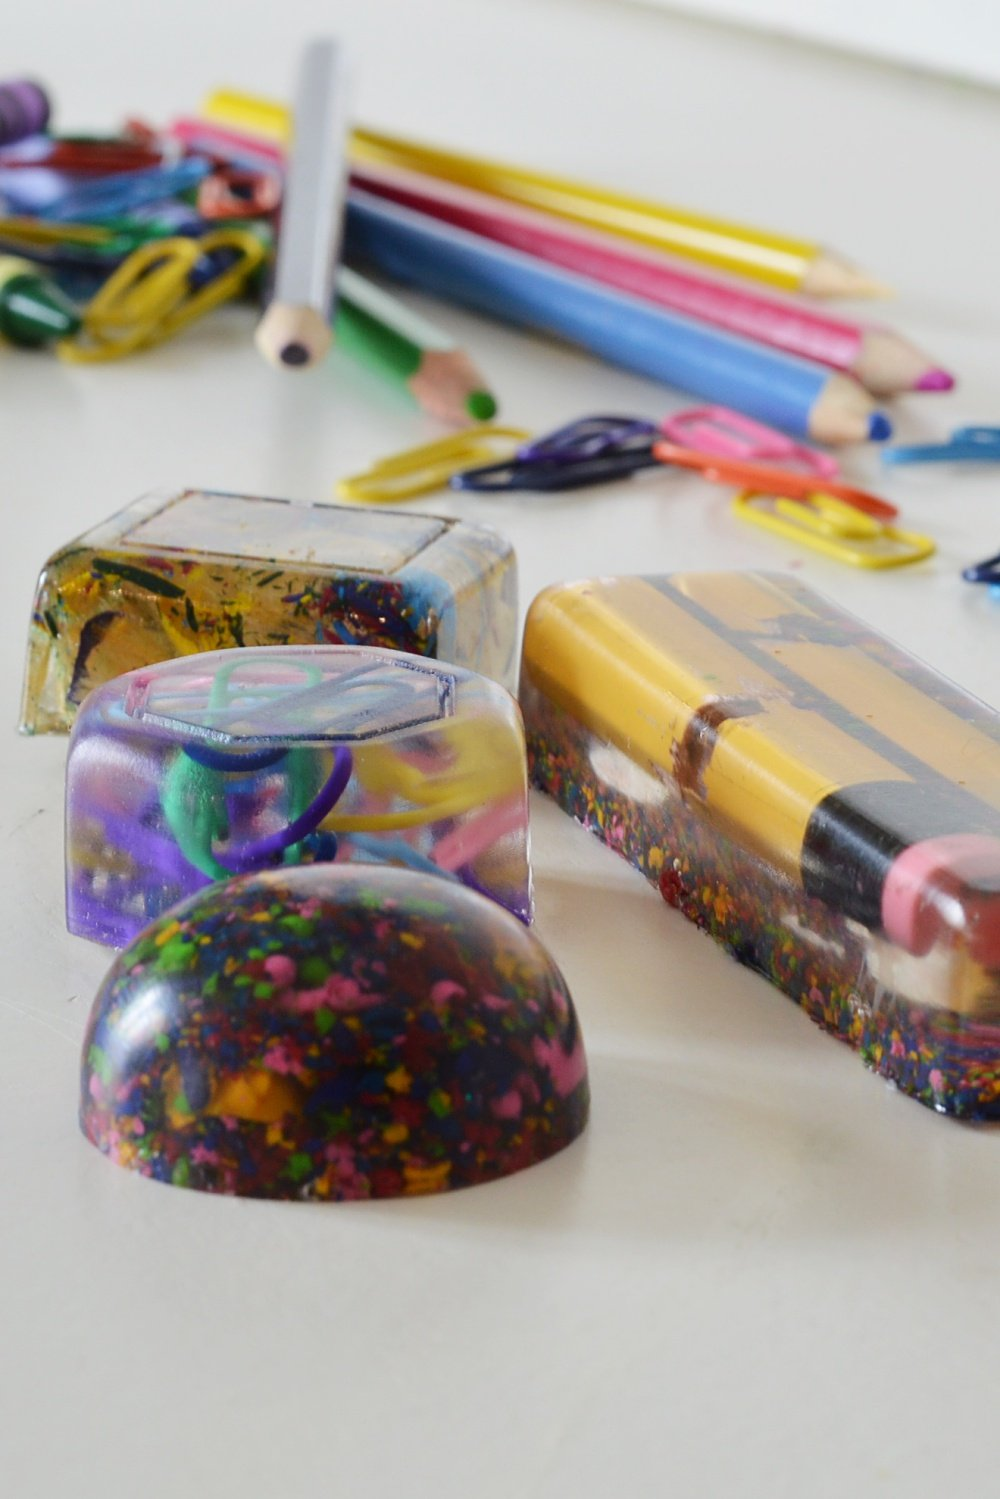 DIY end of year teacher gift using resin and school supplies